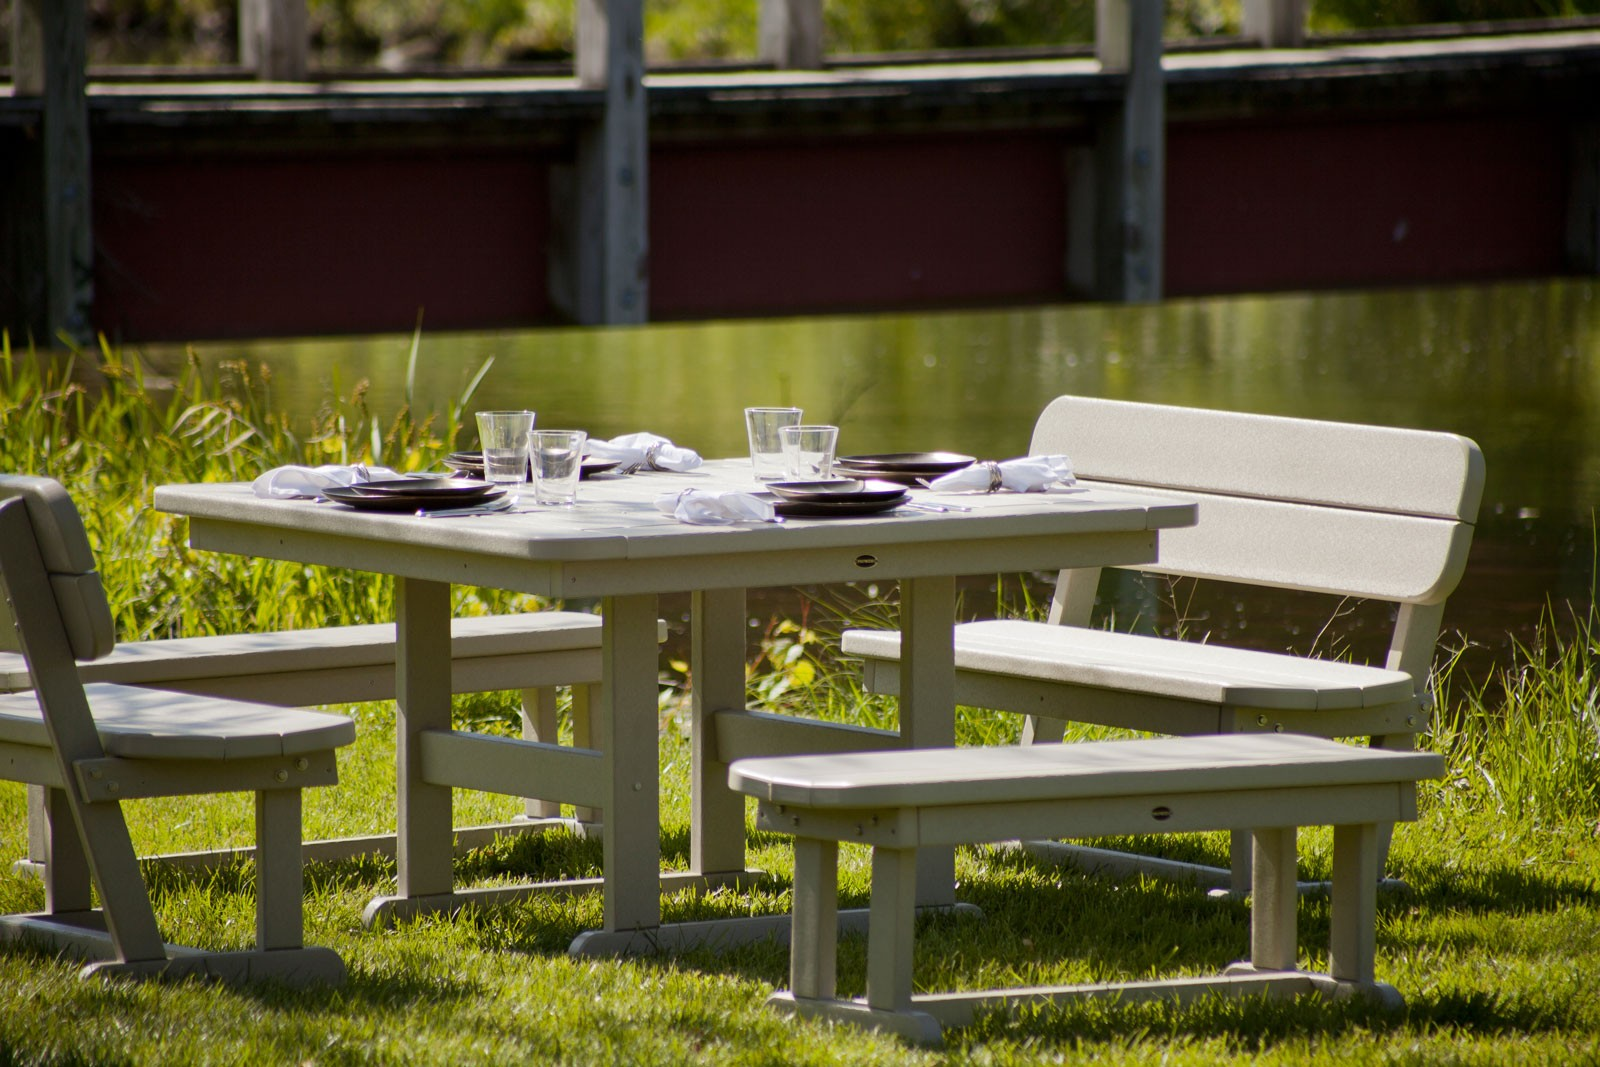 POLYWOOD Park Collection - Polywood park picnic table